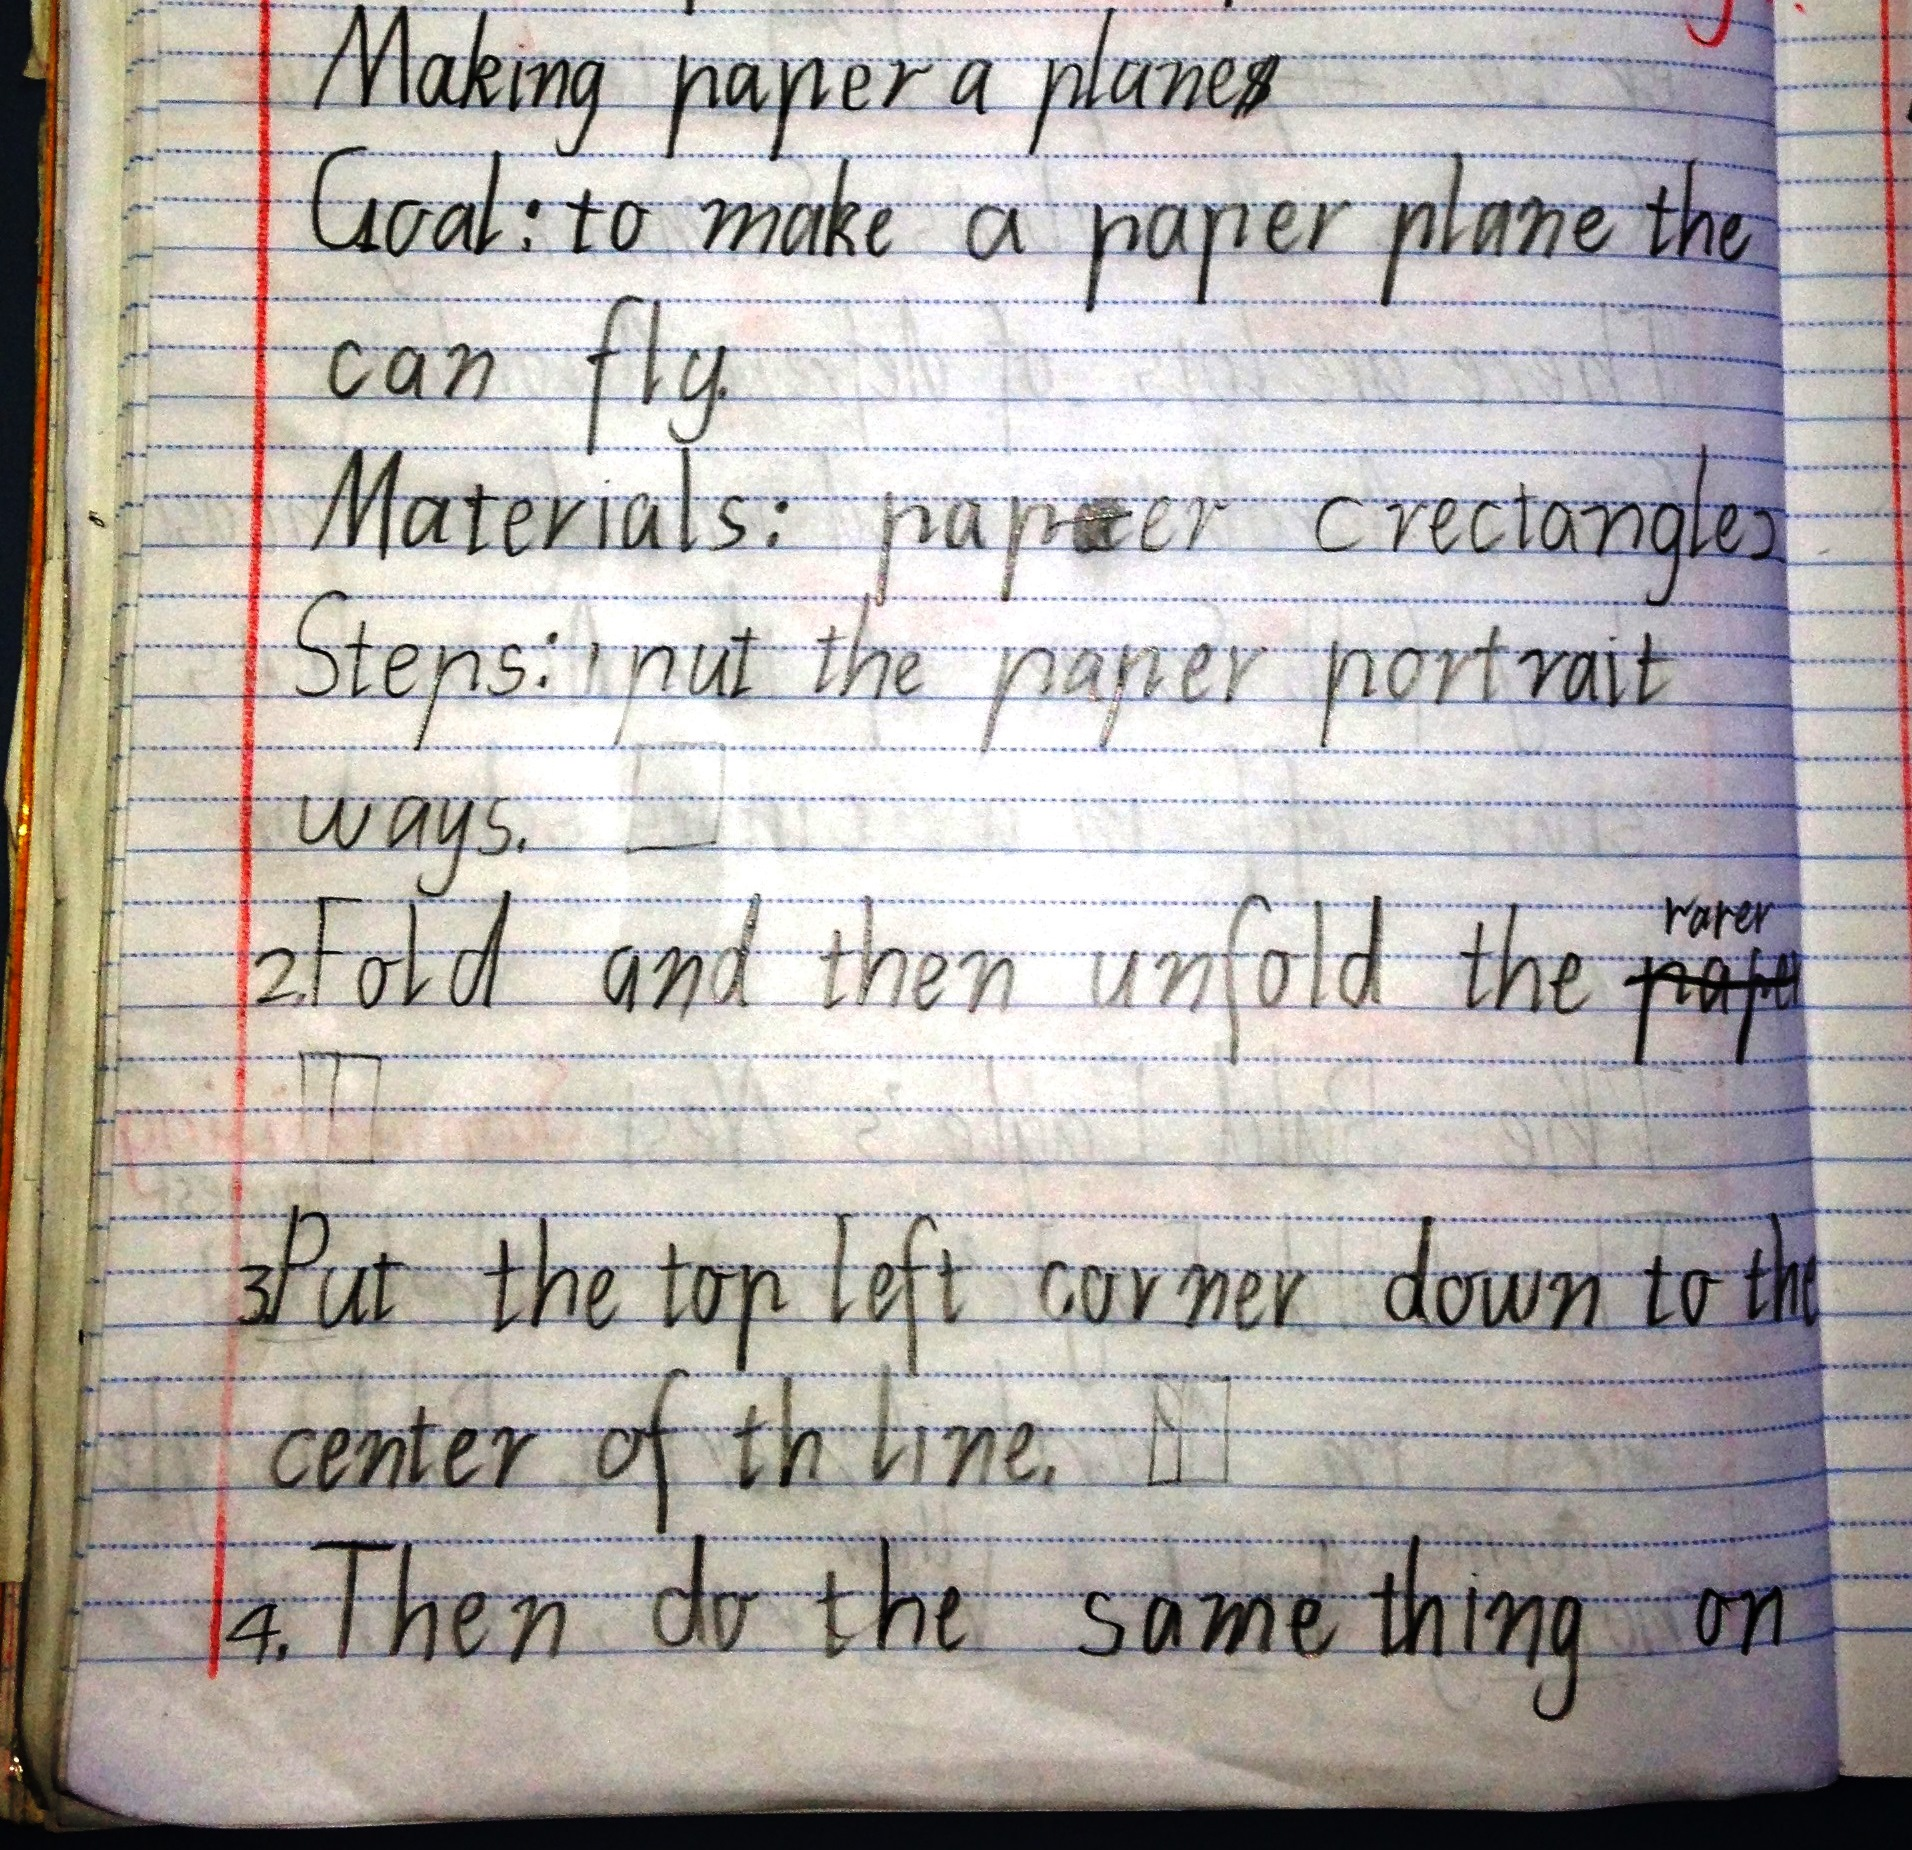 How to Make Paper Planes